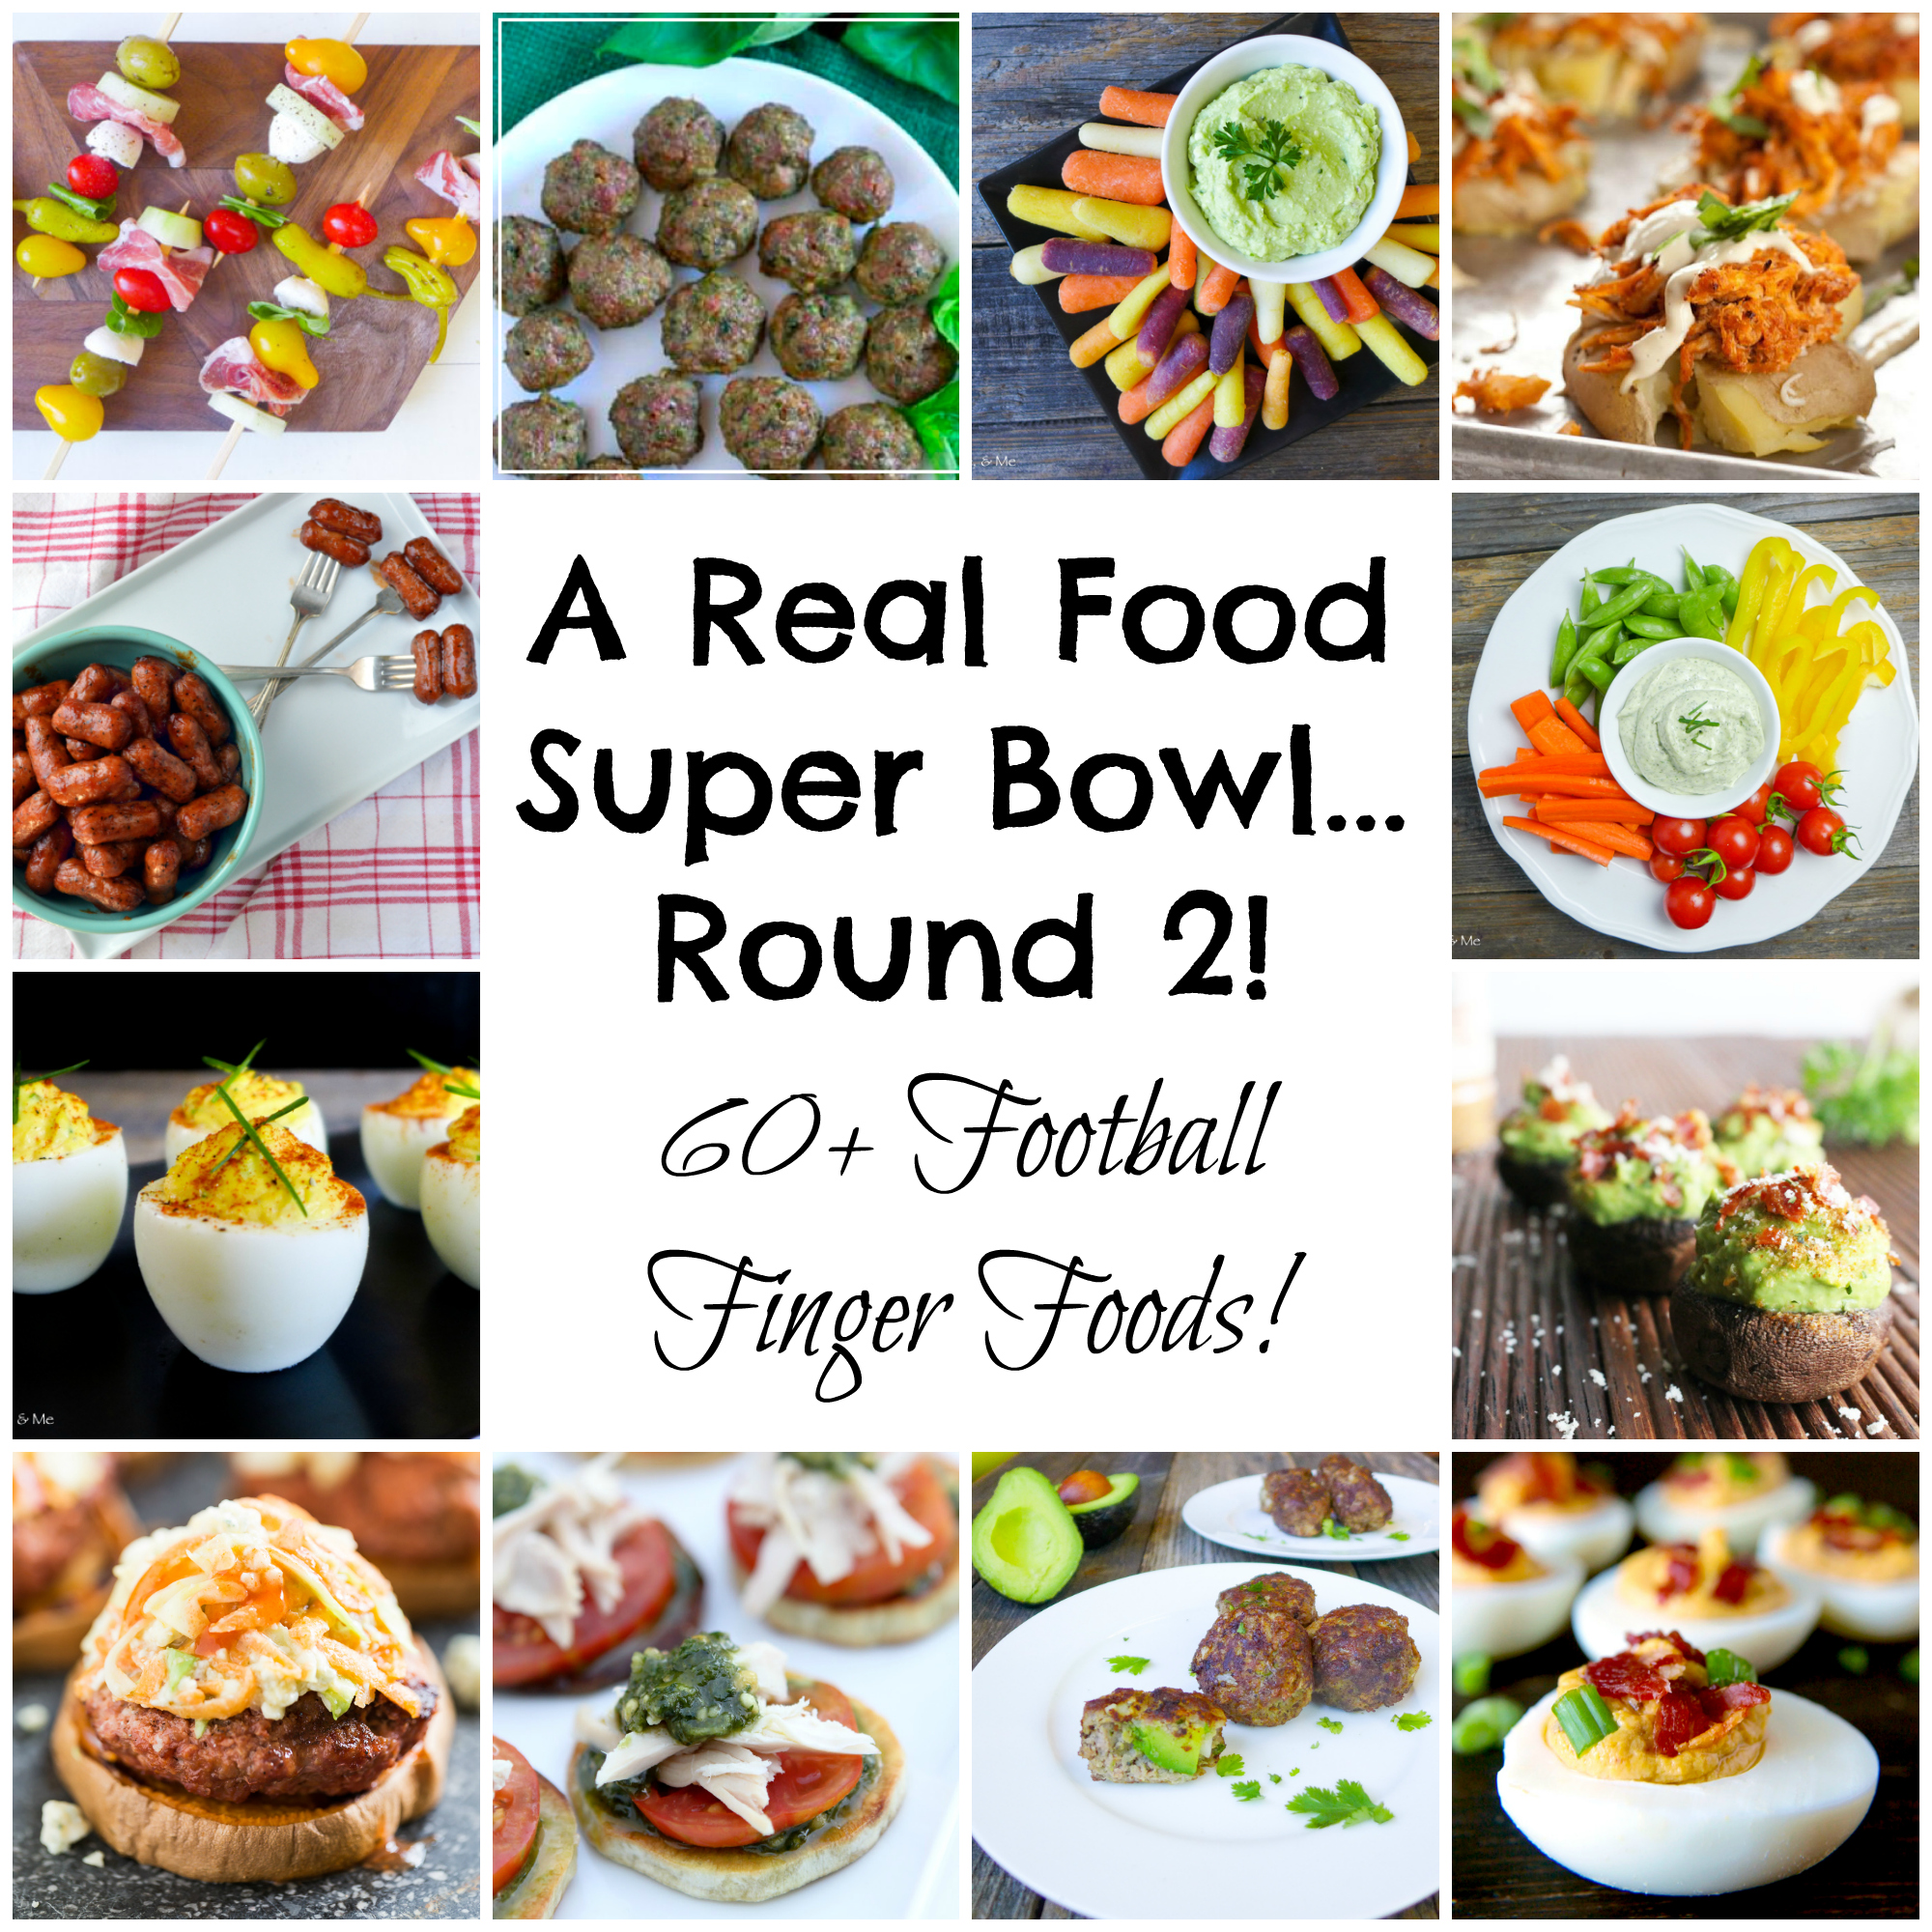 Real Food Super Bowl Round 2... 60+ Football Finger Foods!